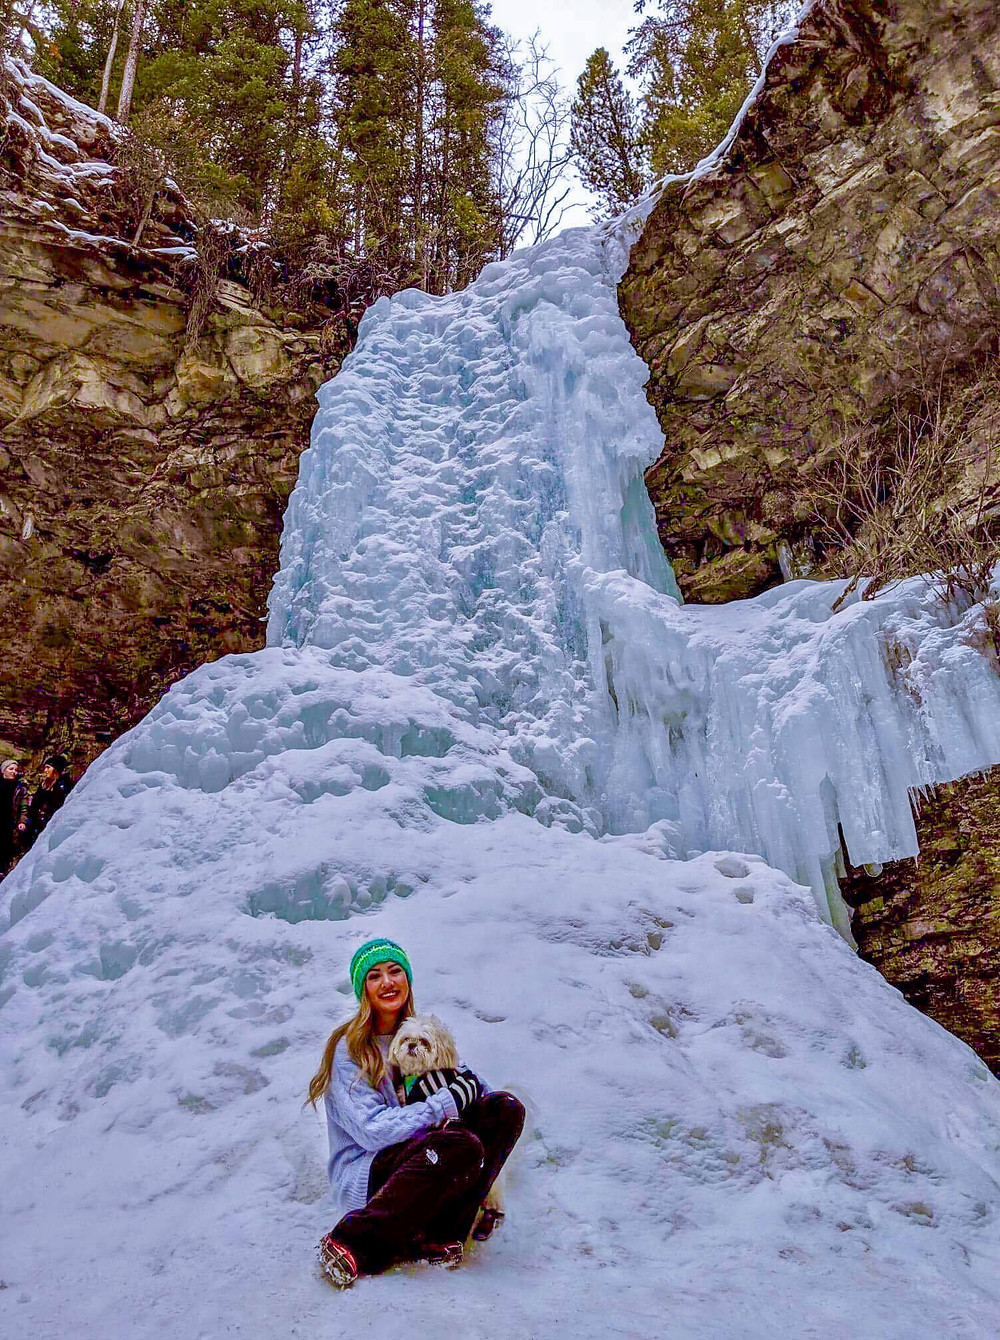 Photograph of travel girl with cute shihtzu in front of frozen glacier waterfalls in Canadian Rocky mountains in Canada.